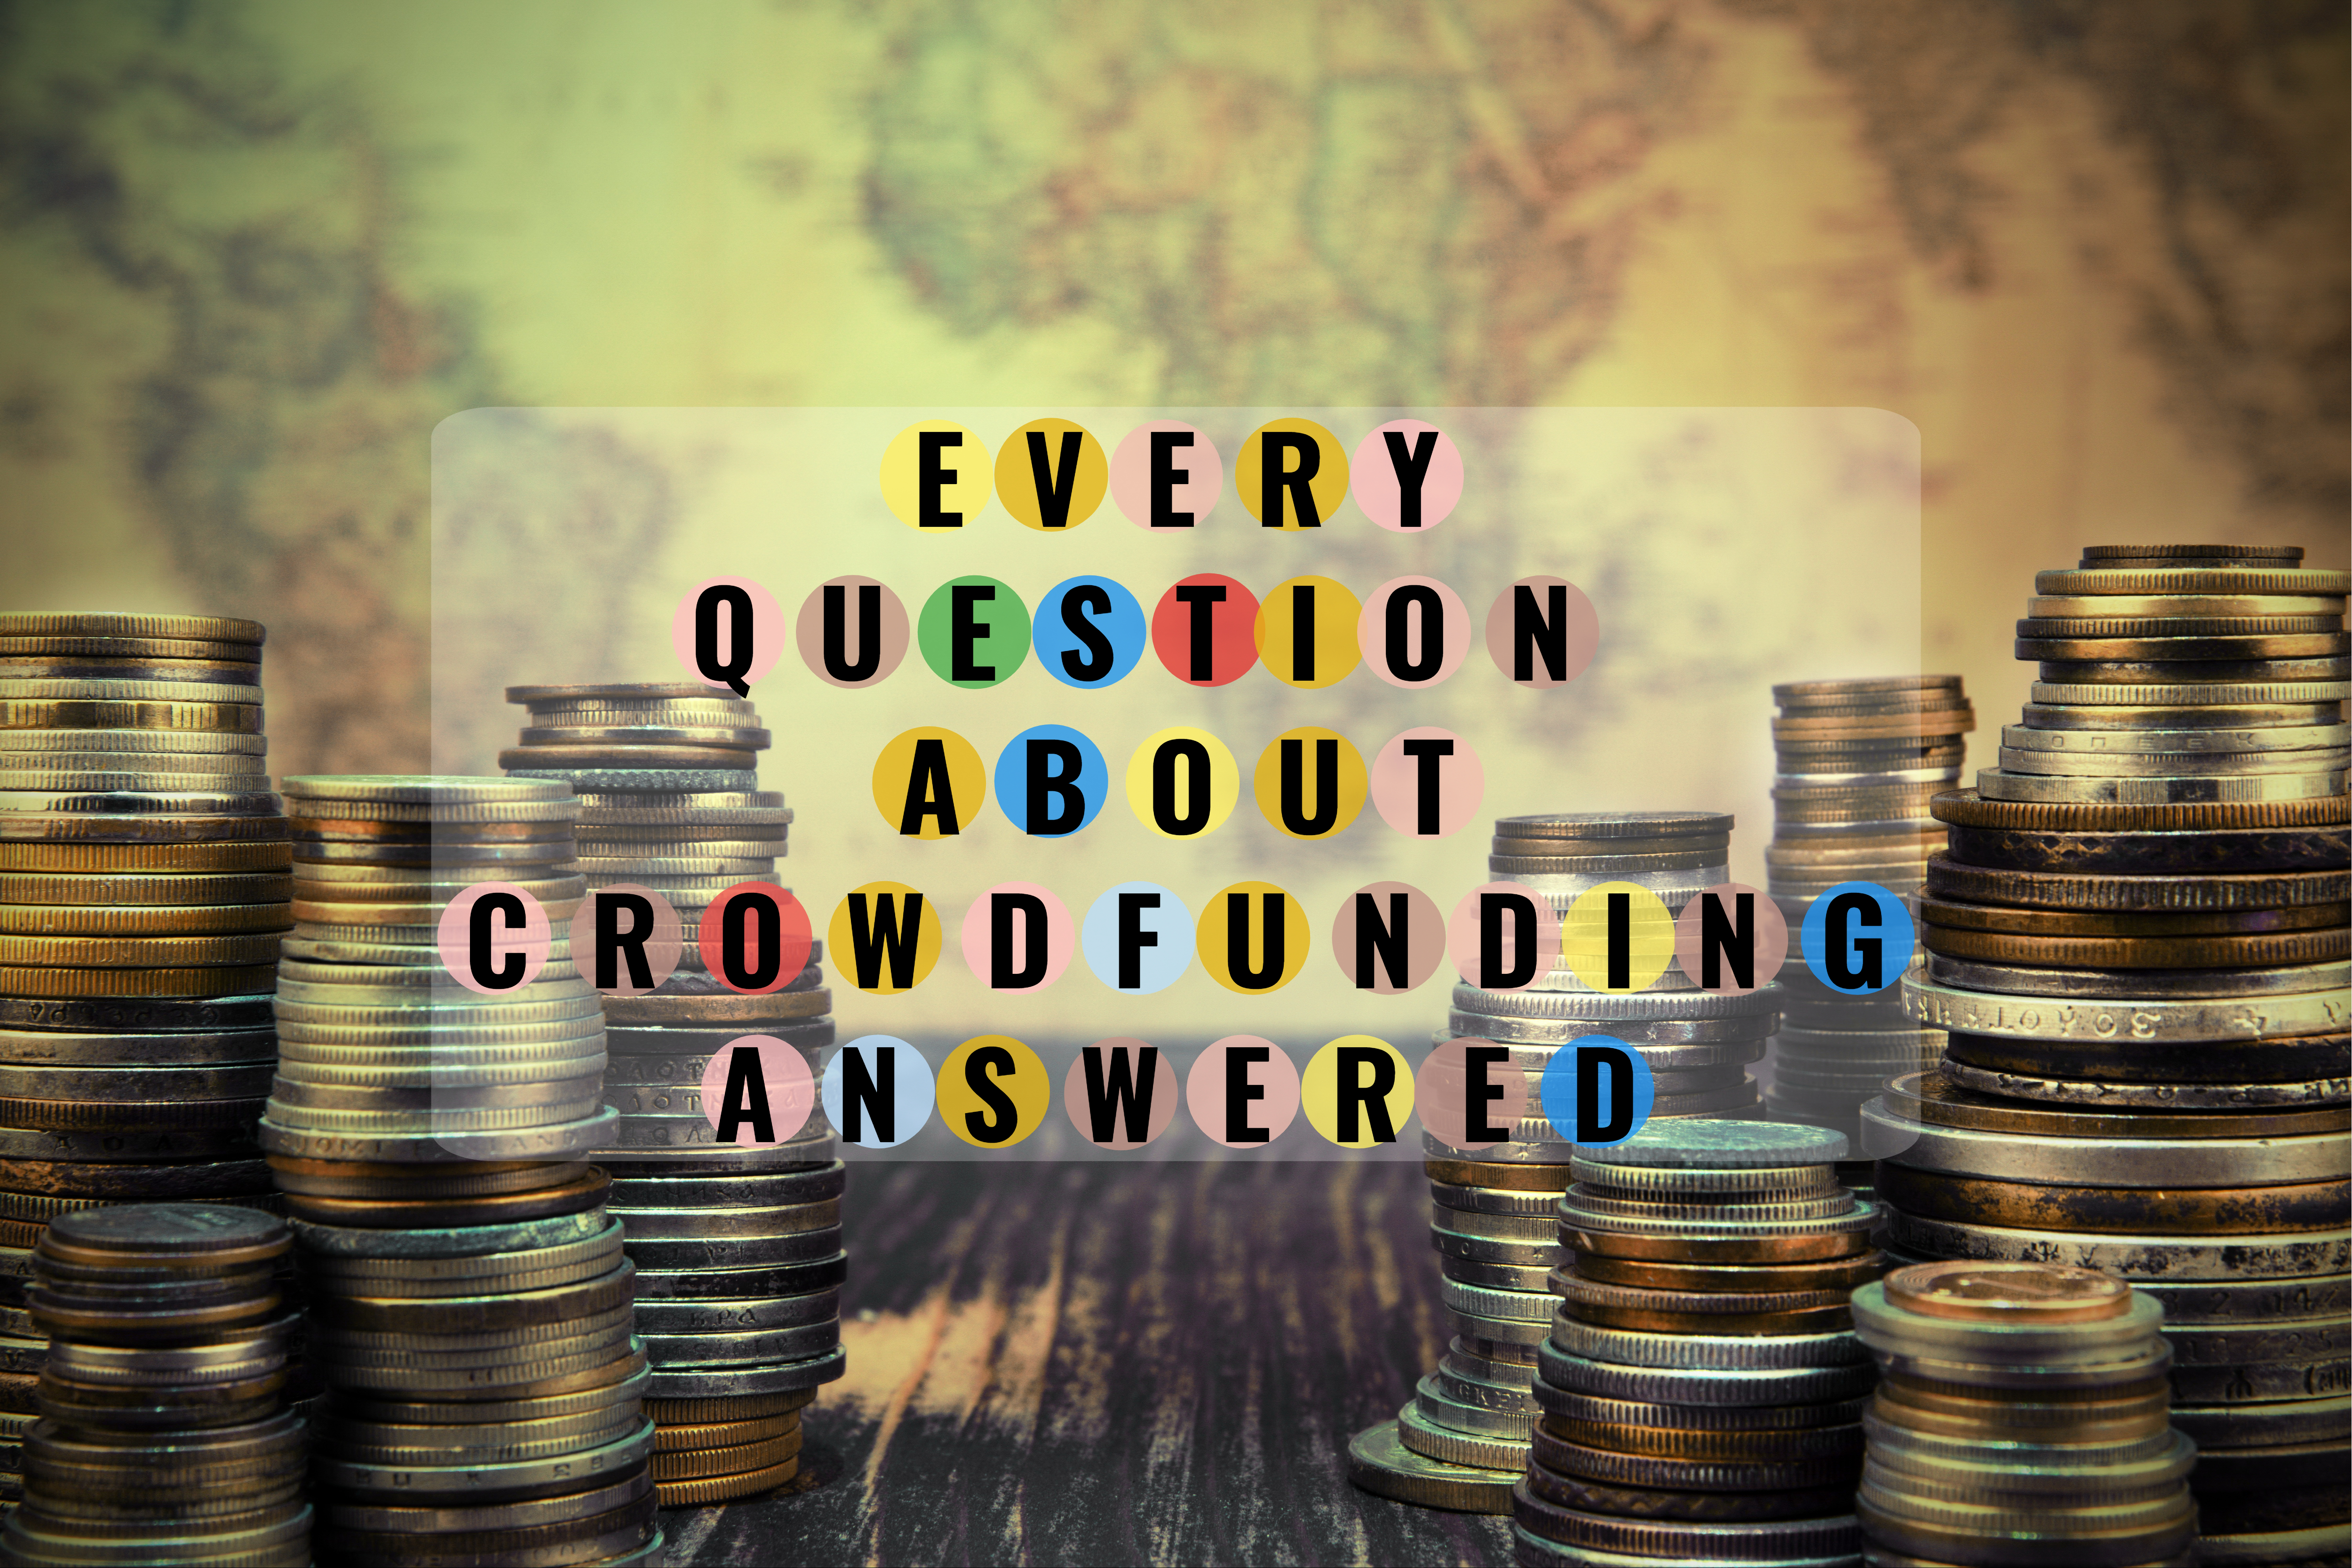 Every Question About Crowdfunding Answered